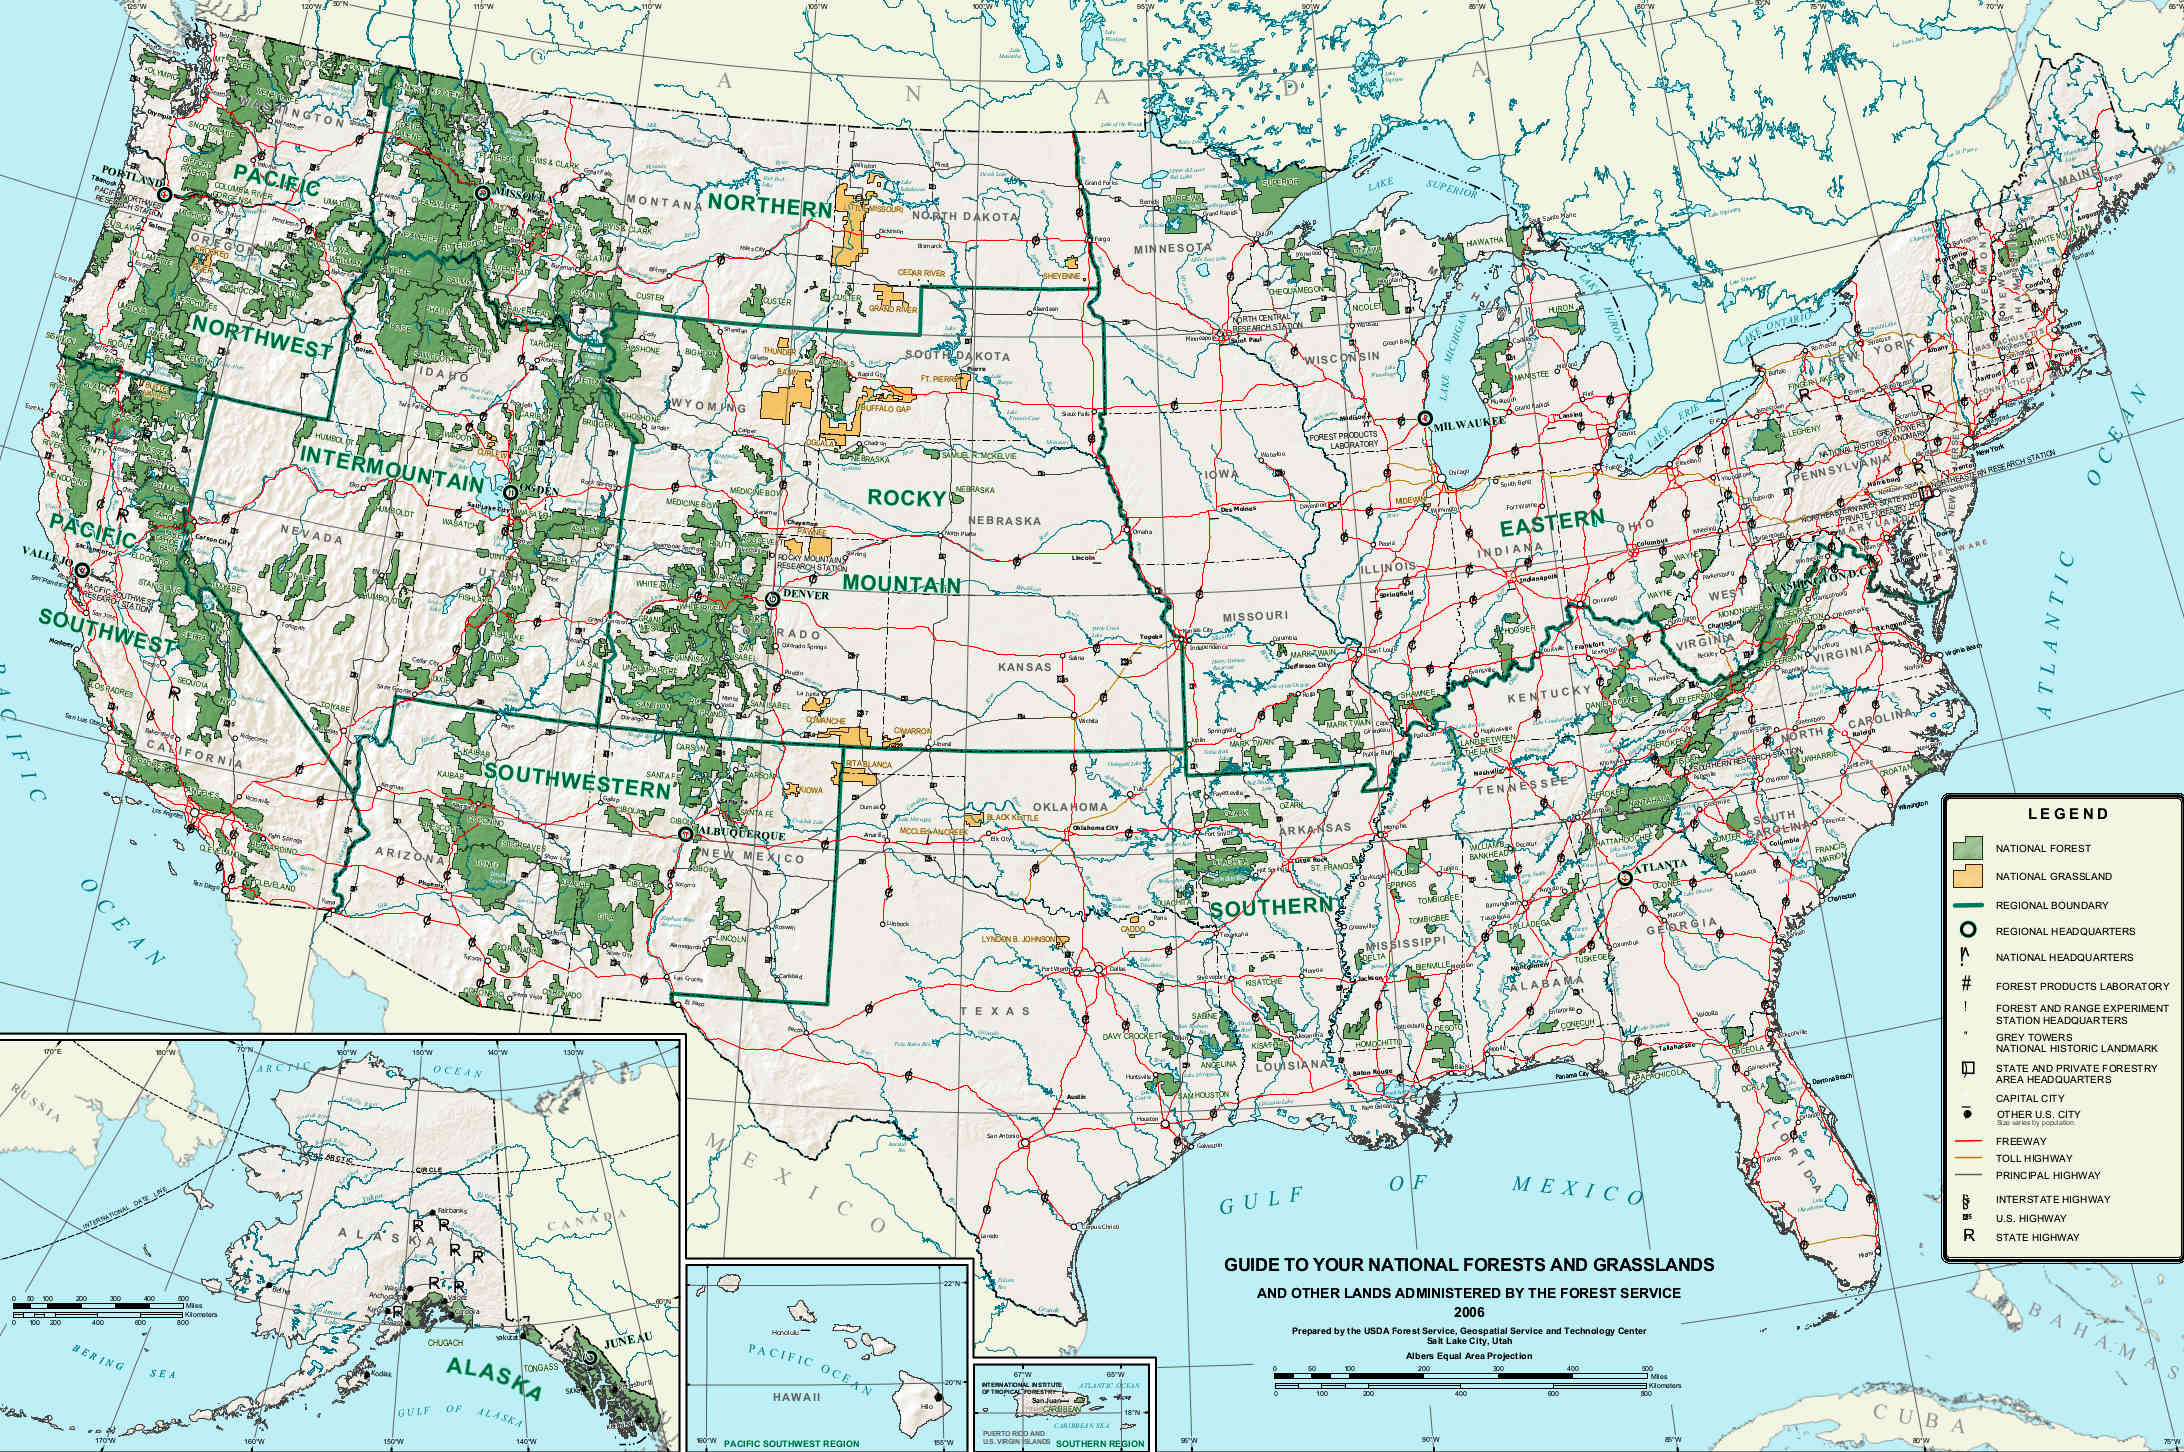 National Forests and Grlands | National Forest Service ... on uinta national forest map, fishlake national forest map, apache national forest map, utah dixie national forest map, se id national forest map, chattanooga national forest map, wayne national forest trail map, united states national forest map, oklahoma national forest map, roosevelt national forest trail map, caribou national forest map, shawnee national forest map,